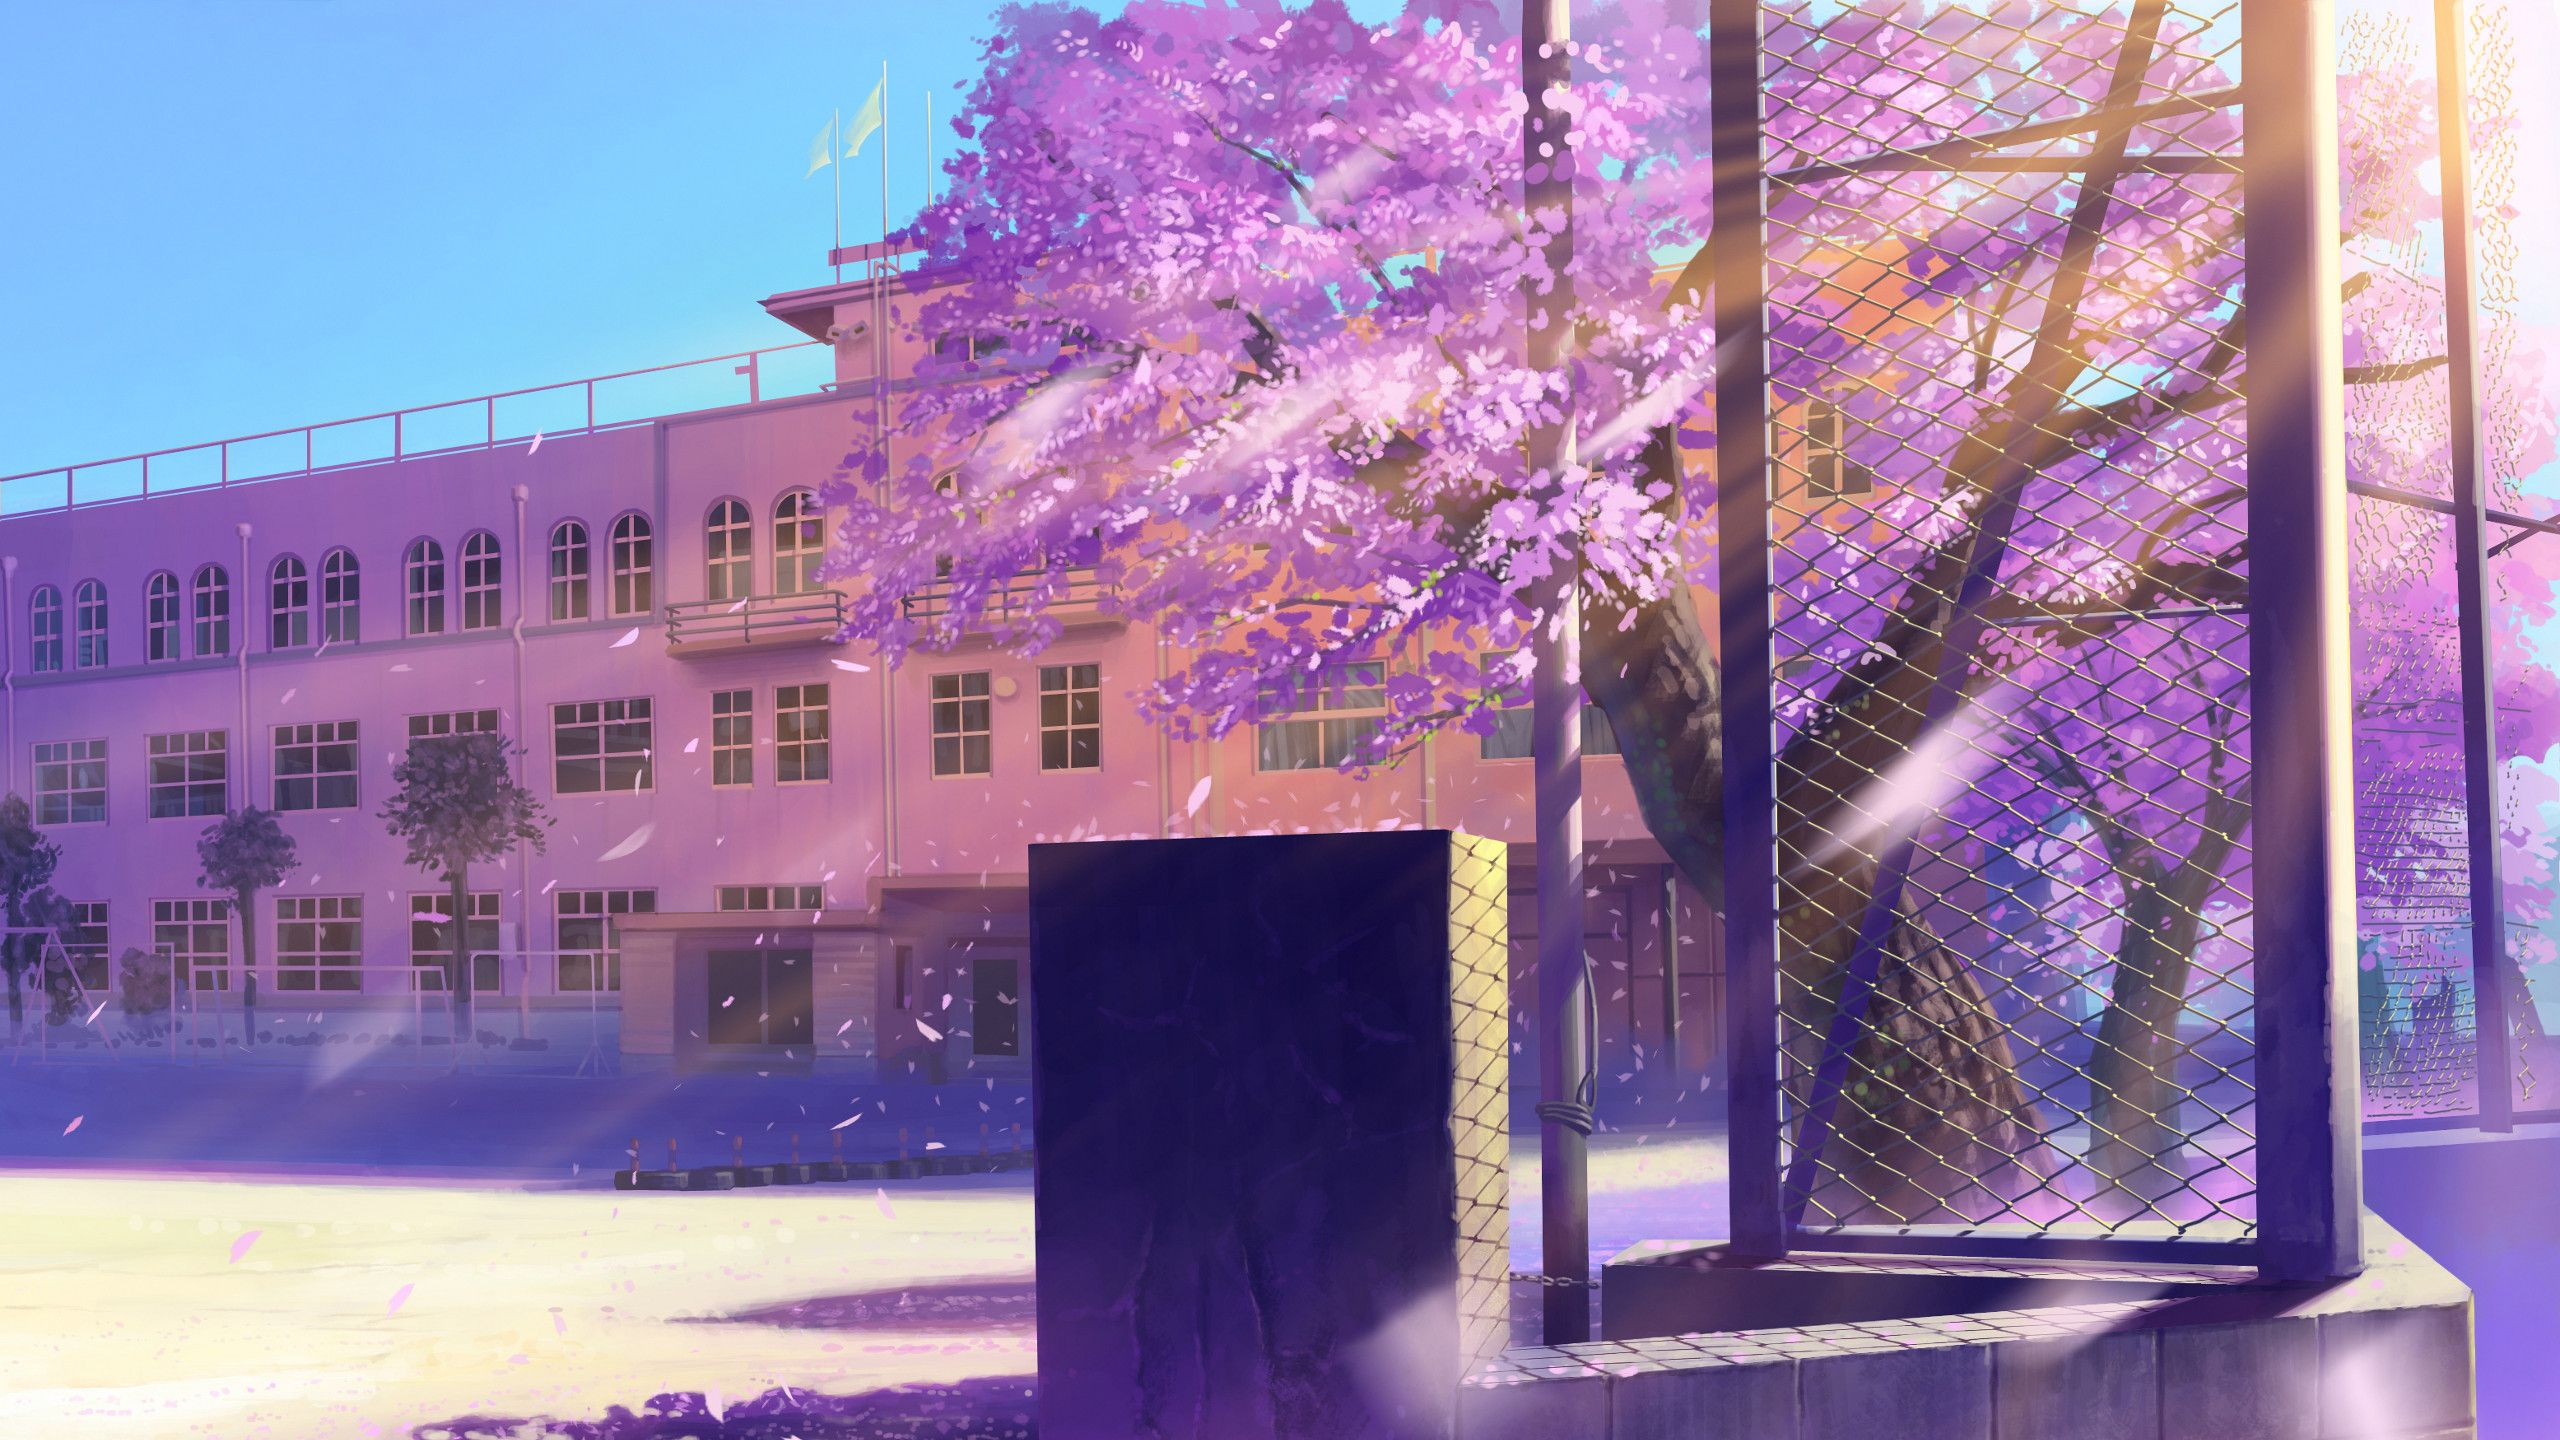 Anime Aesthetic Wallpaper Desktop Hd Dark Anime Scenery Wallpapers 77 Background Pictures Anime Vaporw Anime Scenery Anime Scenery Wallpaper Anime Background